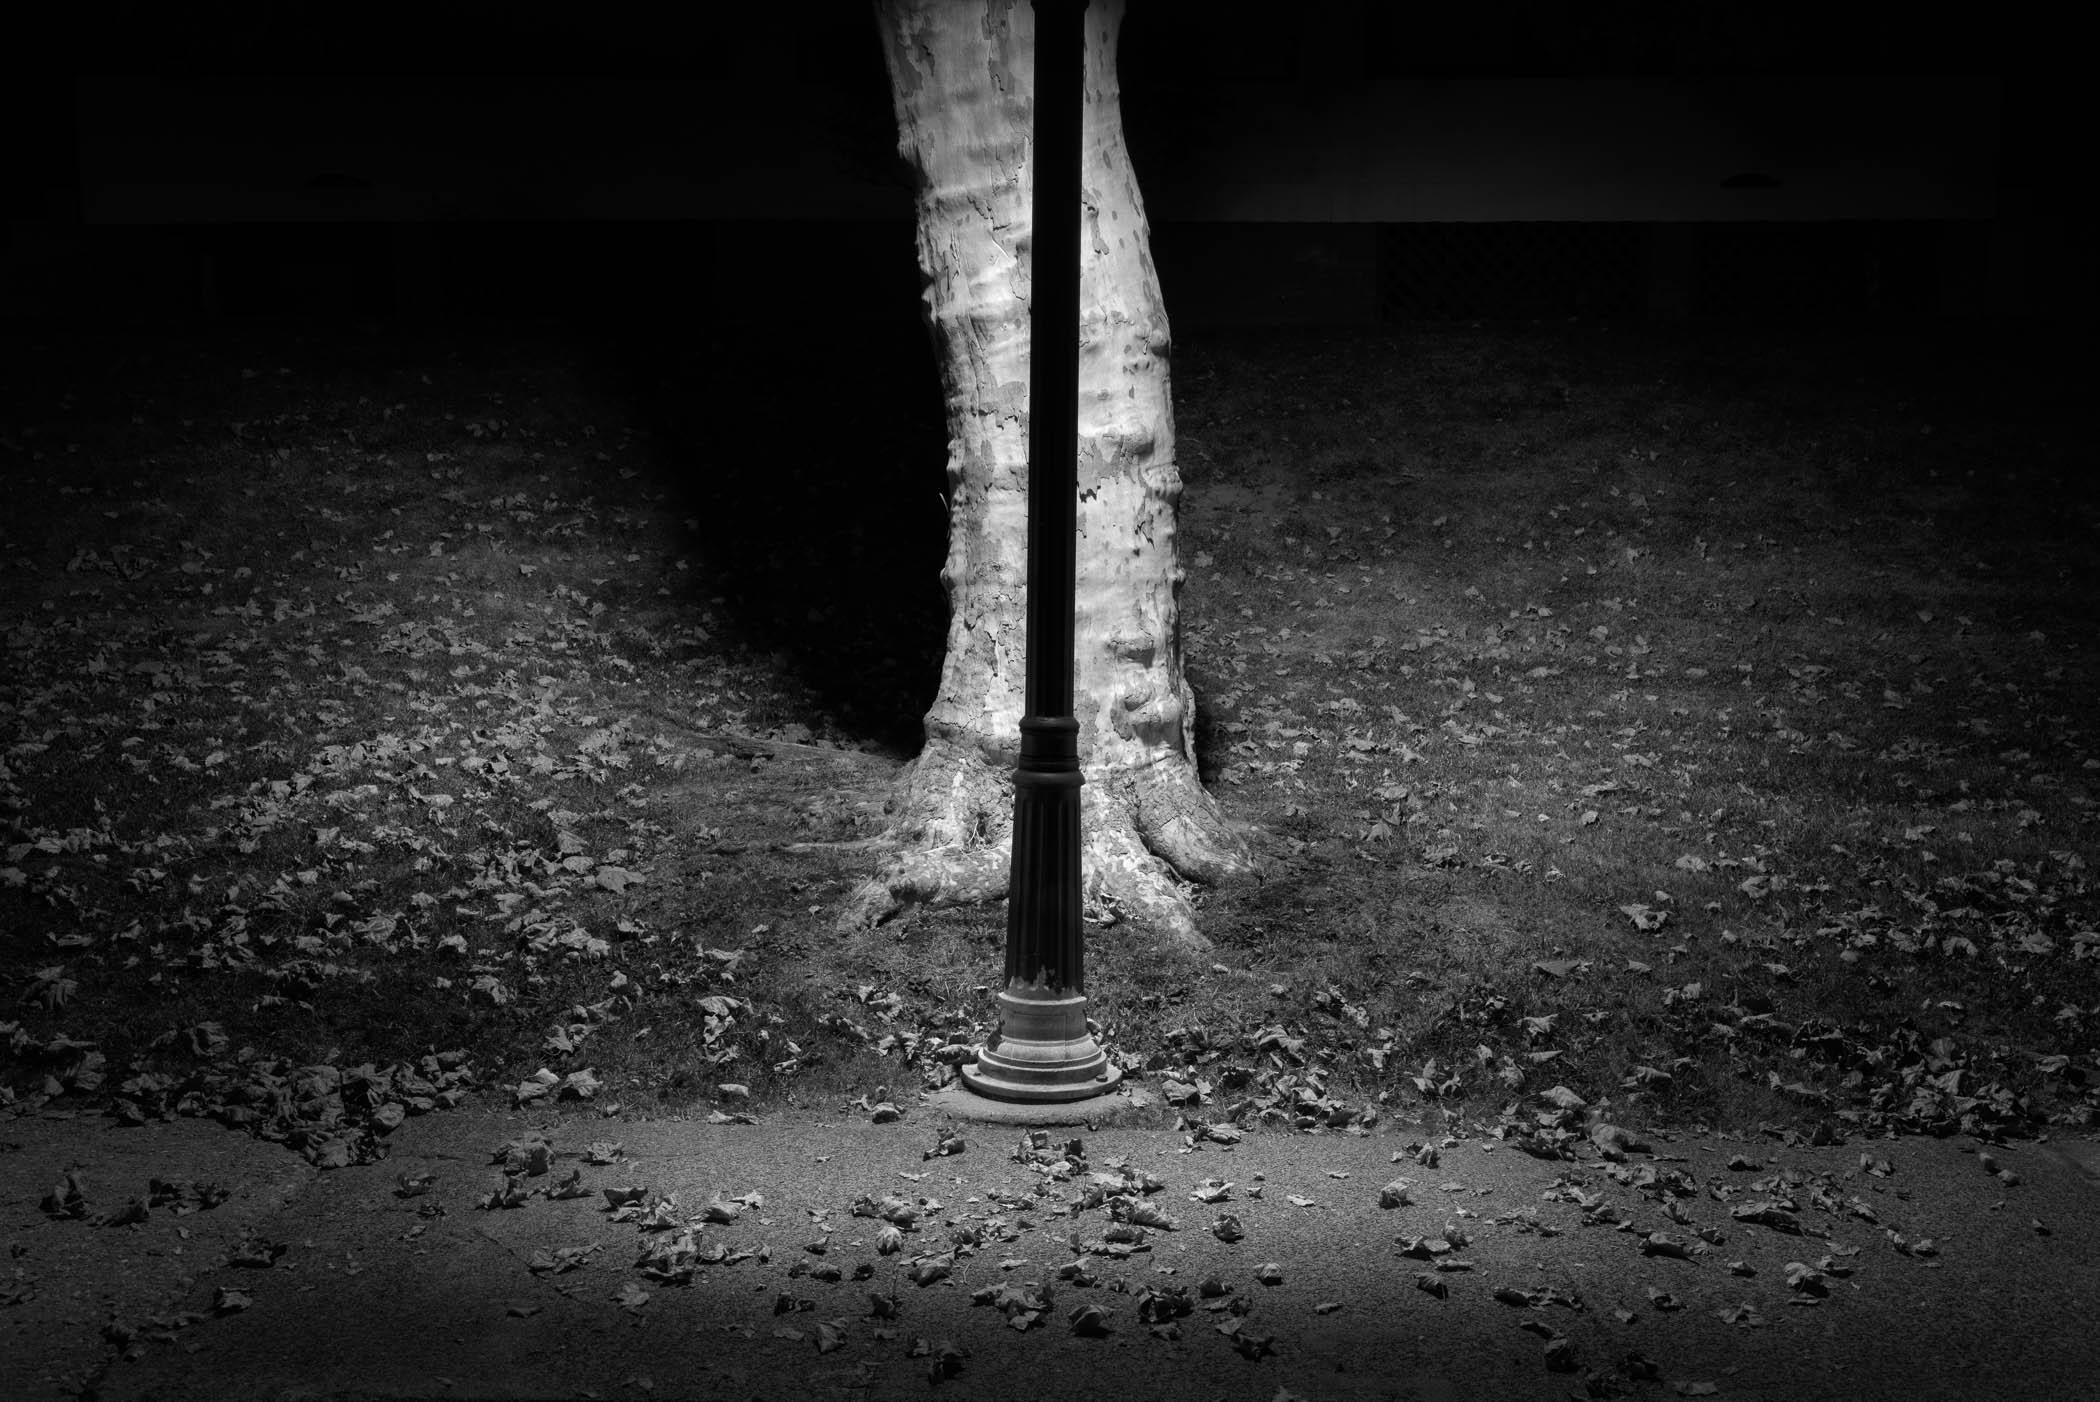 Light Pole and Tree Trunk